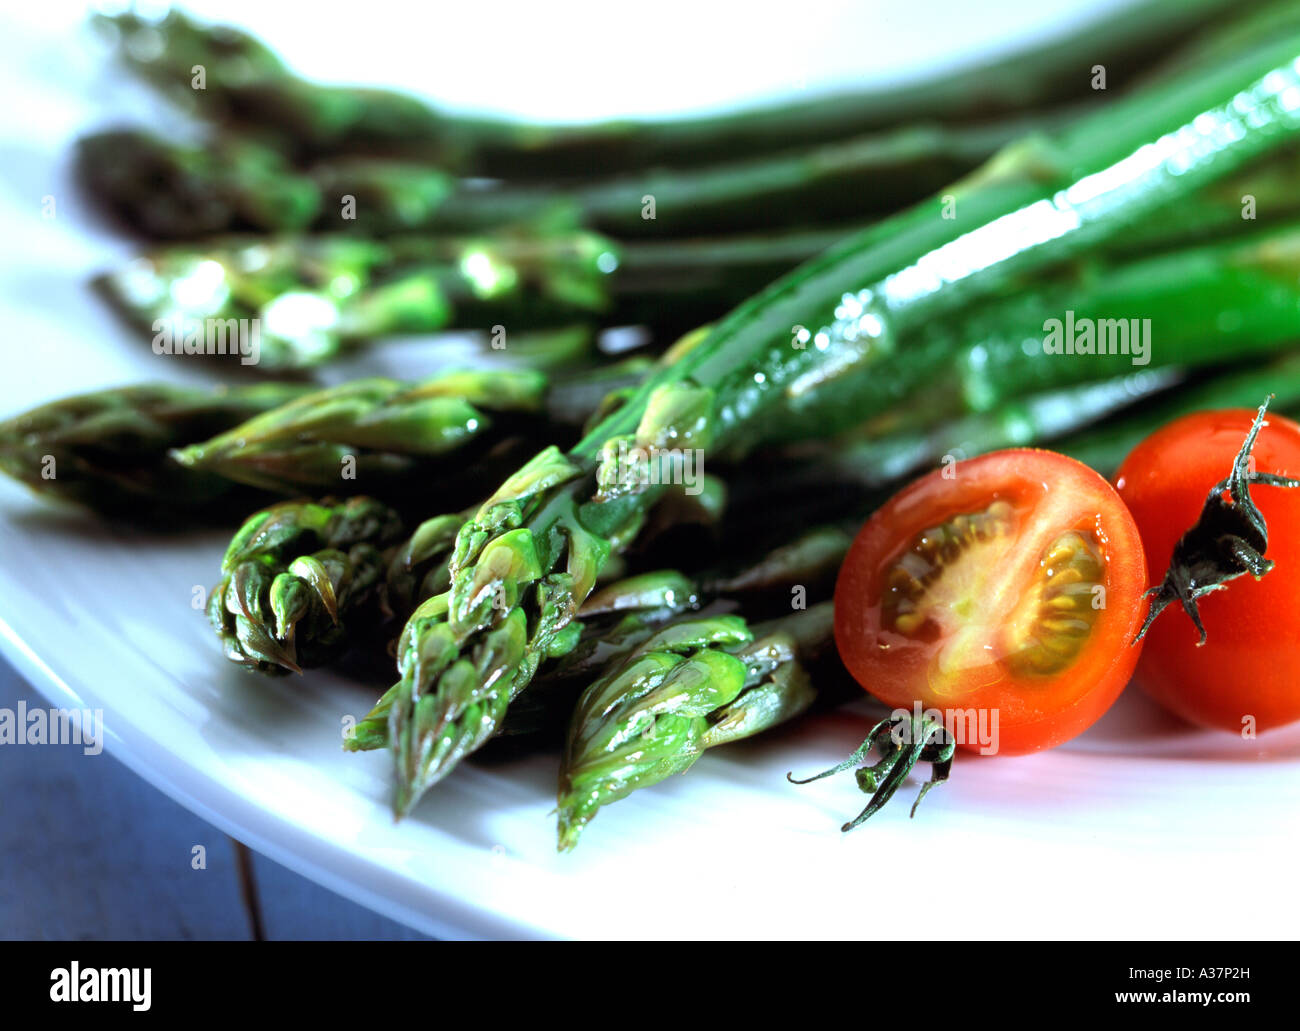 essen gruener spargel asparagus meal on a plate green asparagus stock photo royalty free image. Black Bedroom Furniture Sets. Home Design Ideas